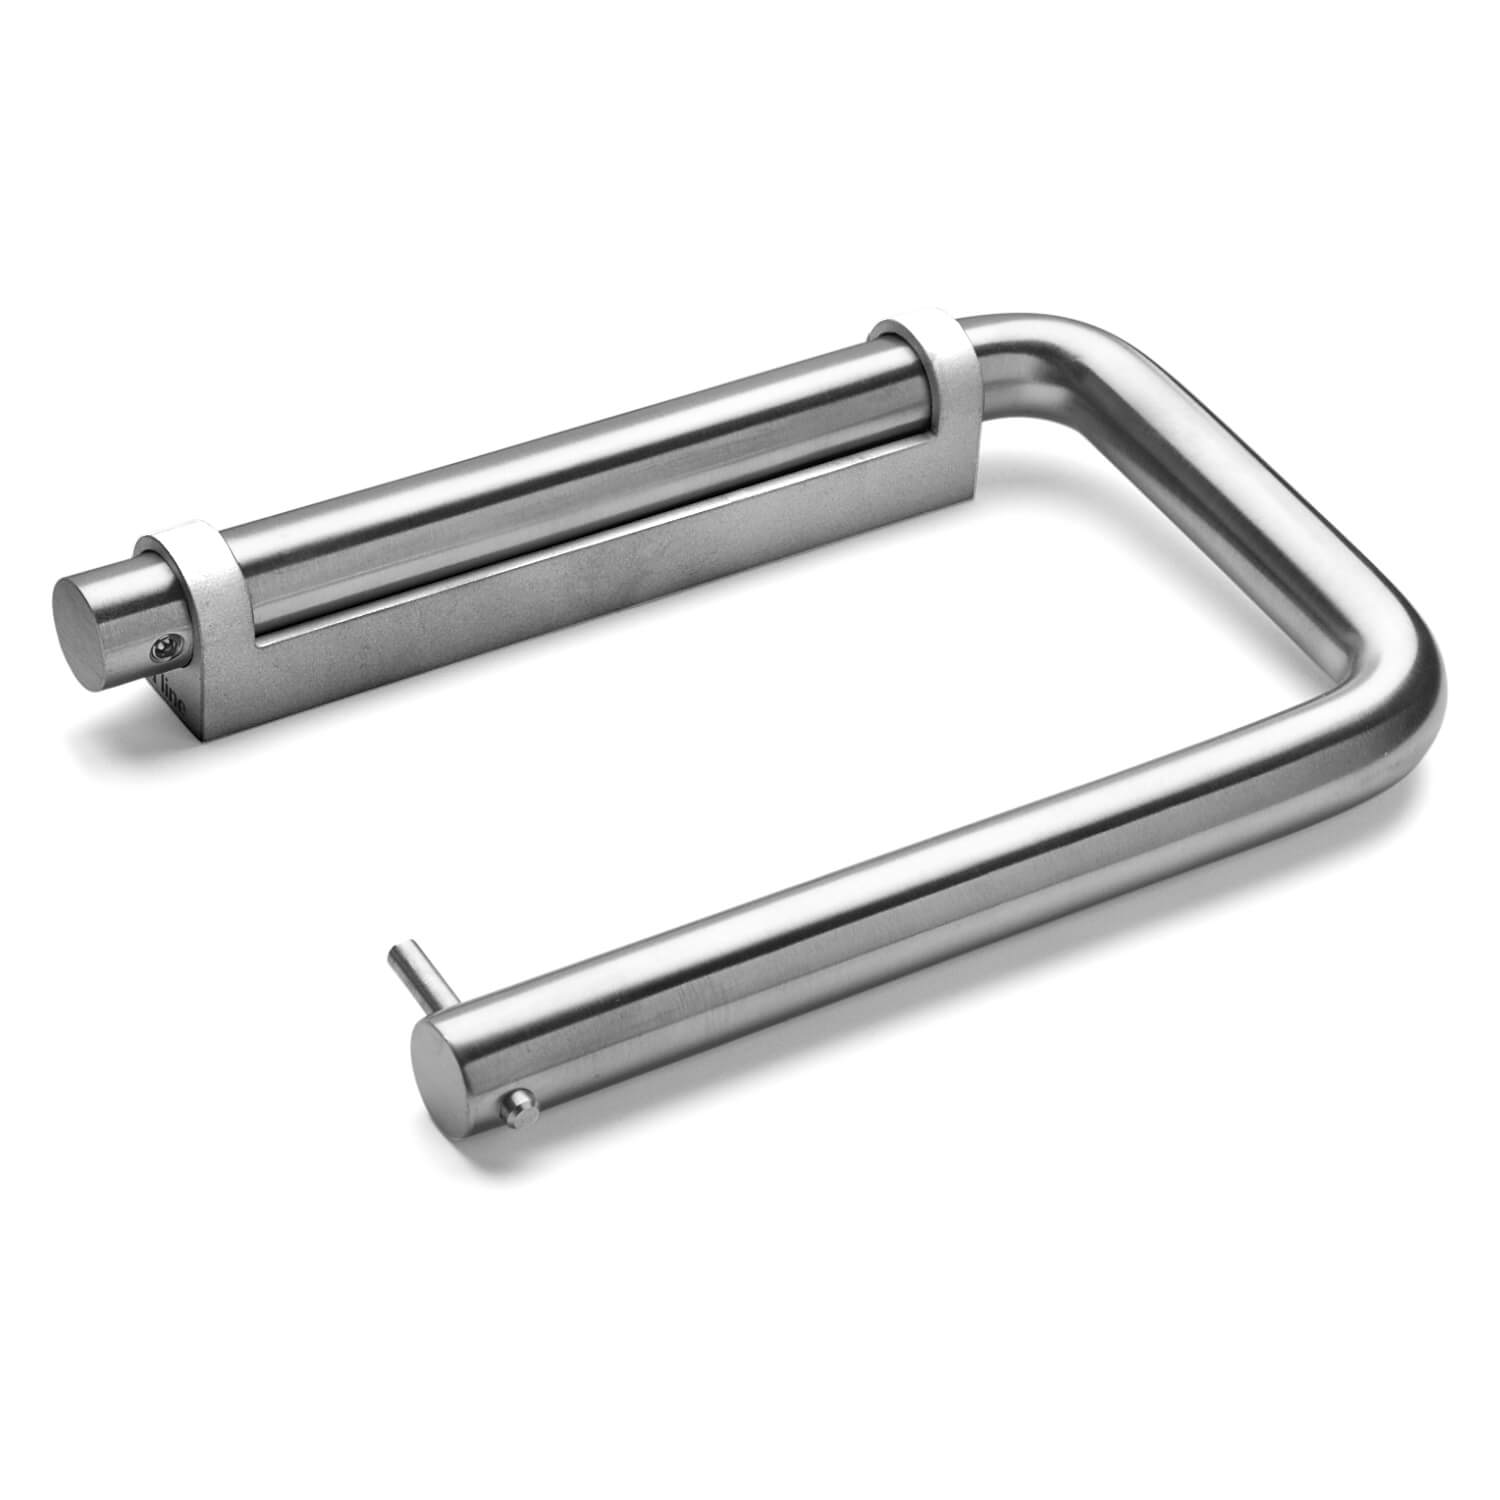 Toilet Roll Holder D Line Brushed Stainless Steel